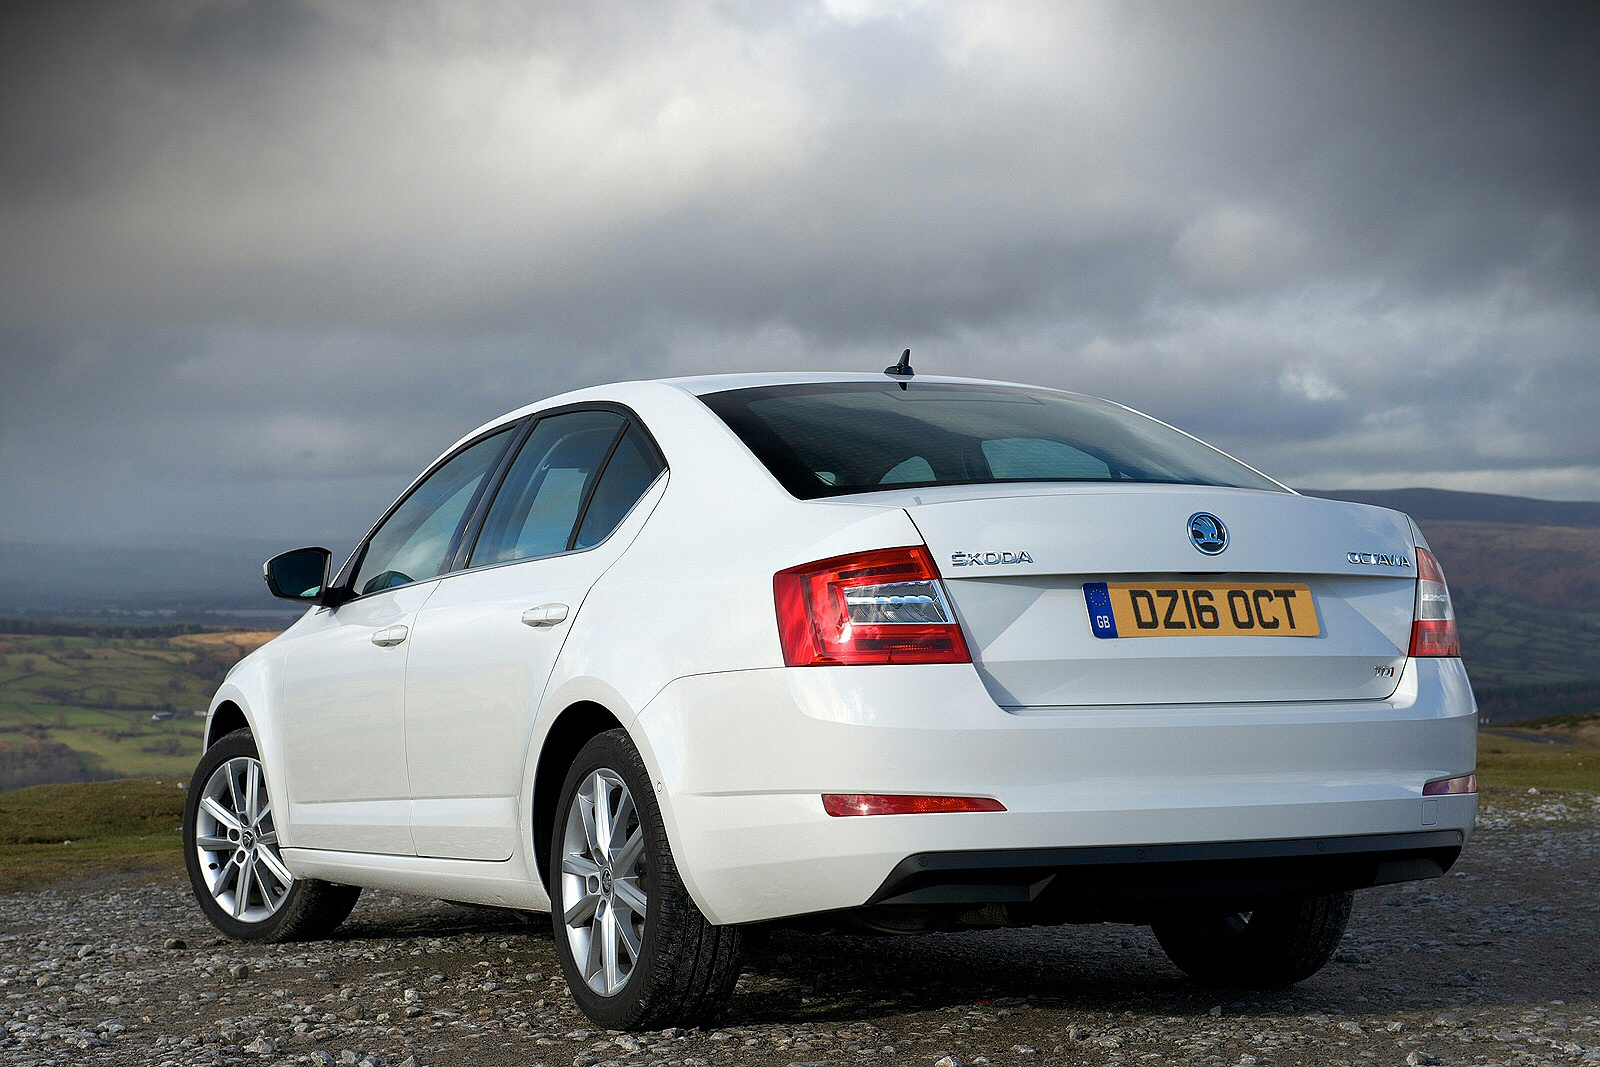 Image two of a Skoda Octavia